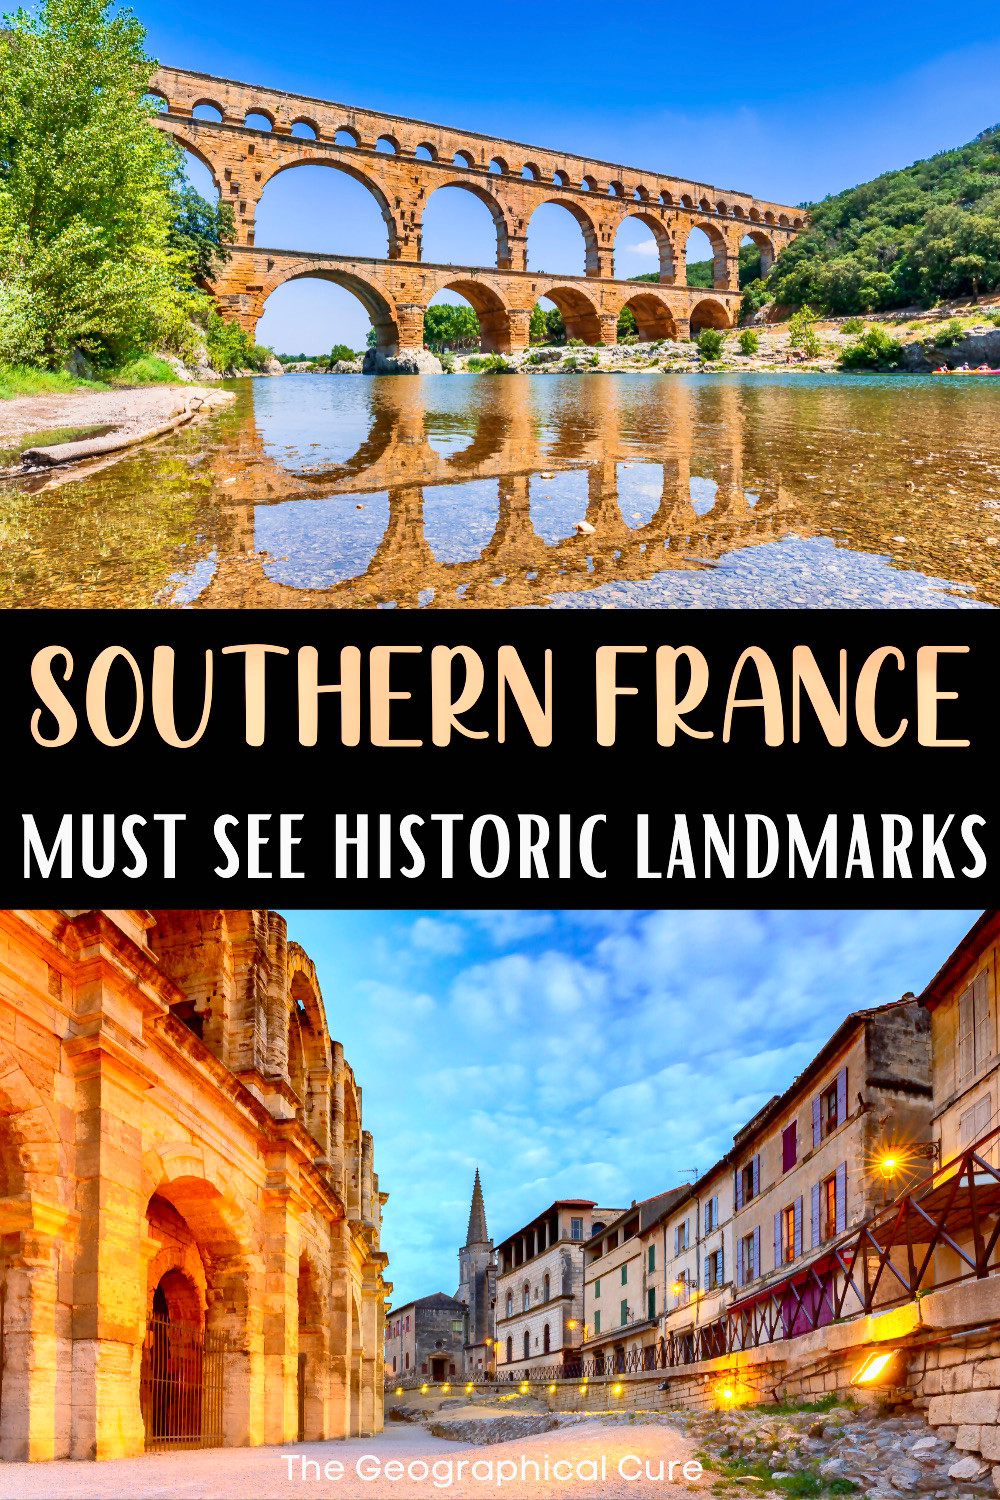 ultimate guide to must see attractions, landmarks, and monuments in Southern France